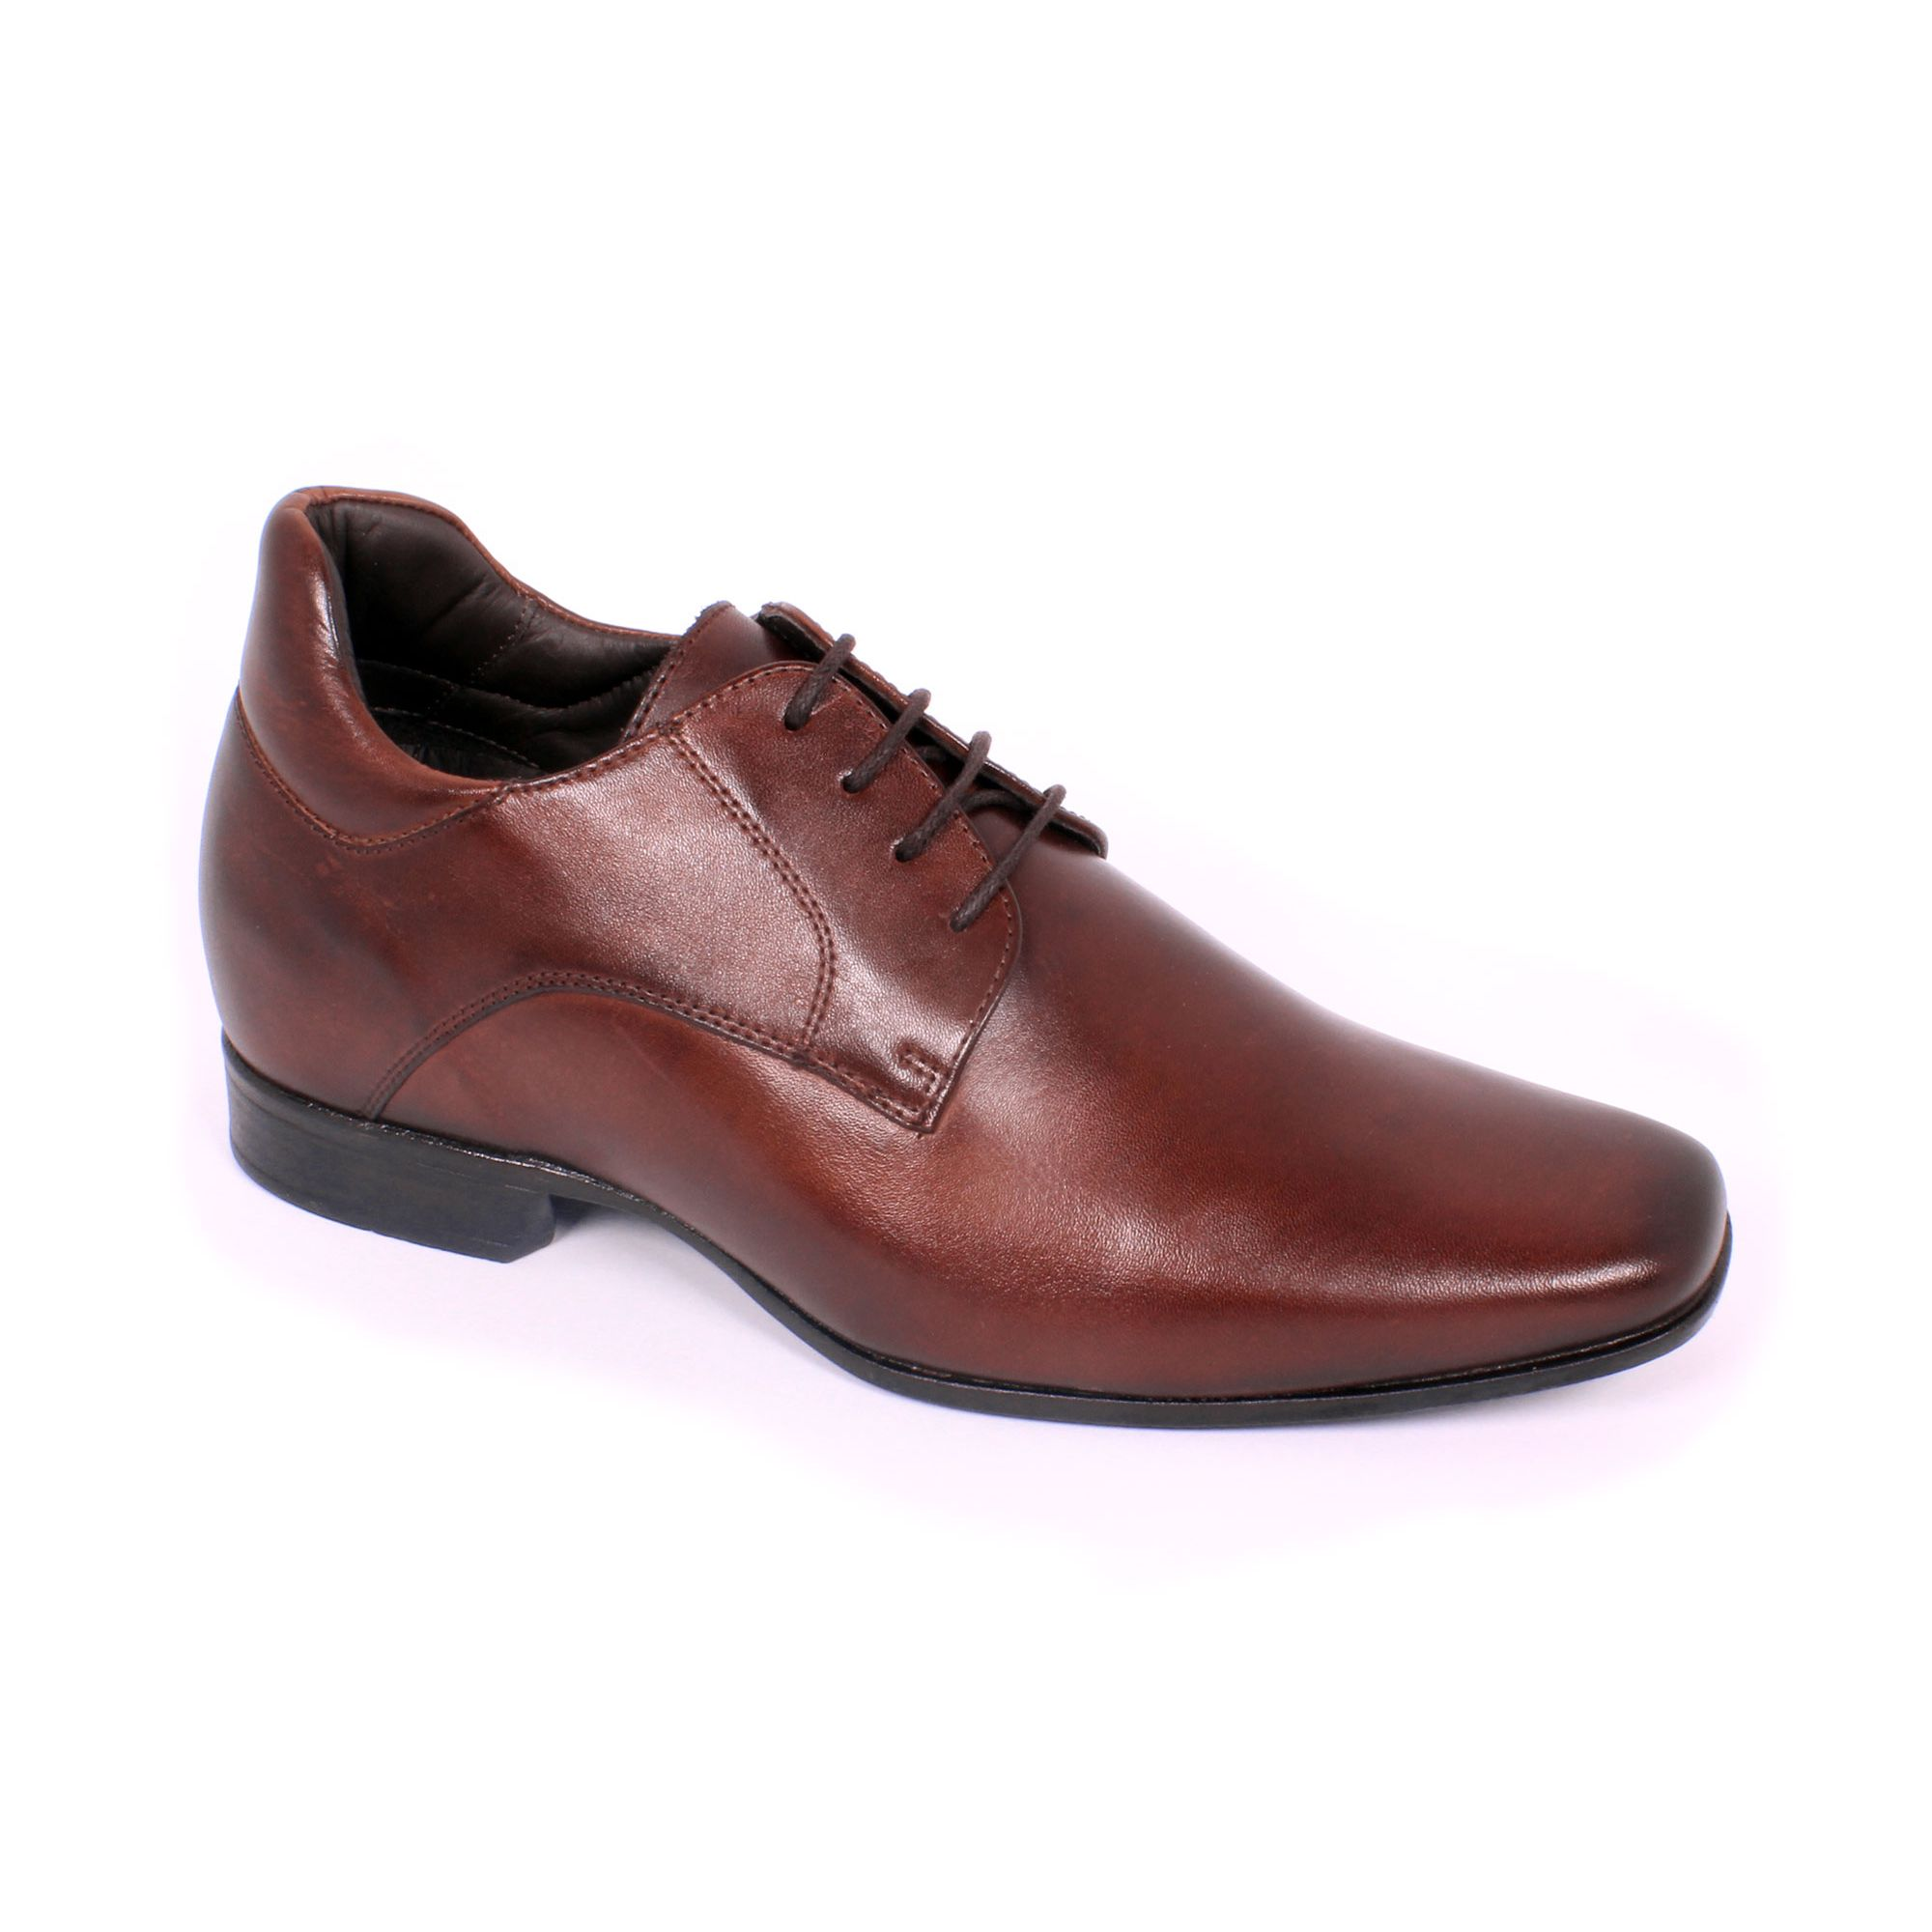 Zapato Formal Fashion Café Max Denegri +7cms de Altura_70822